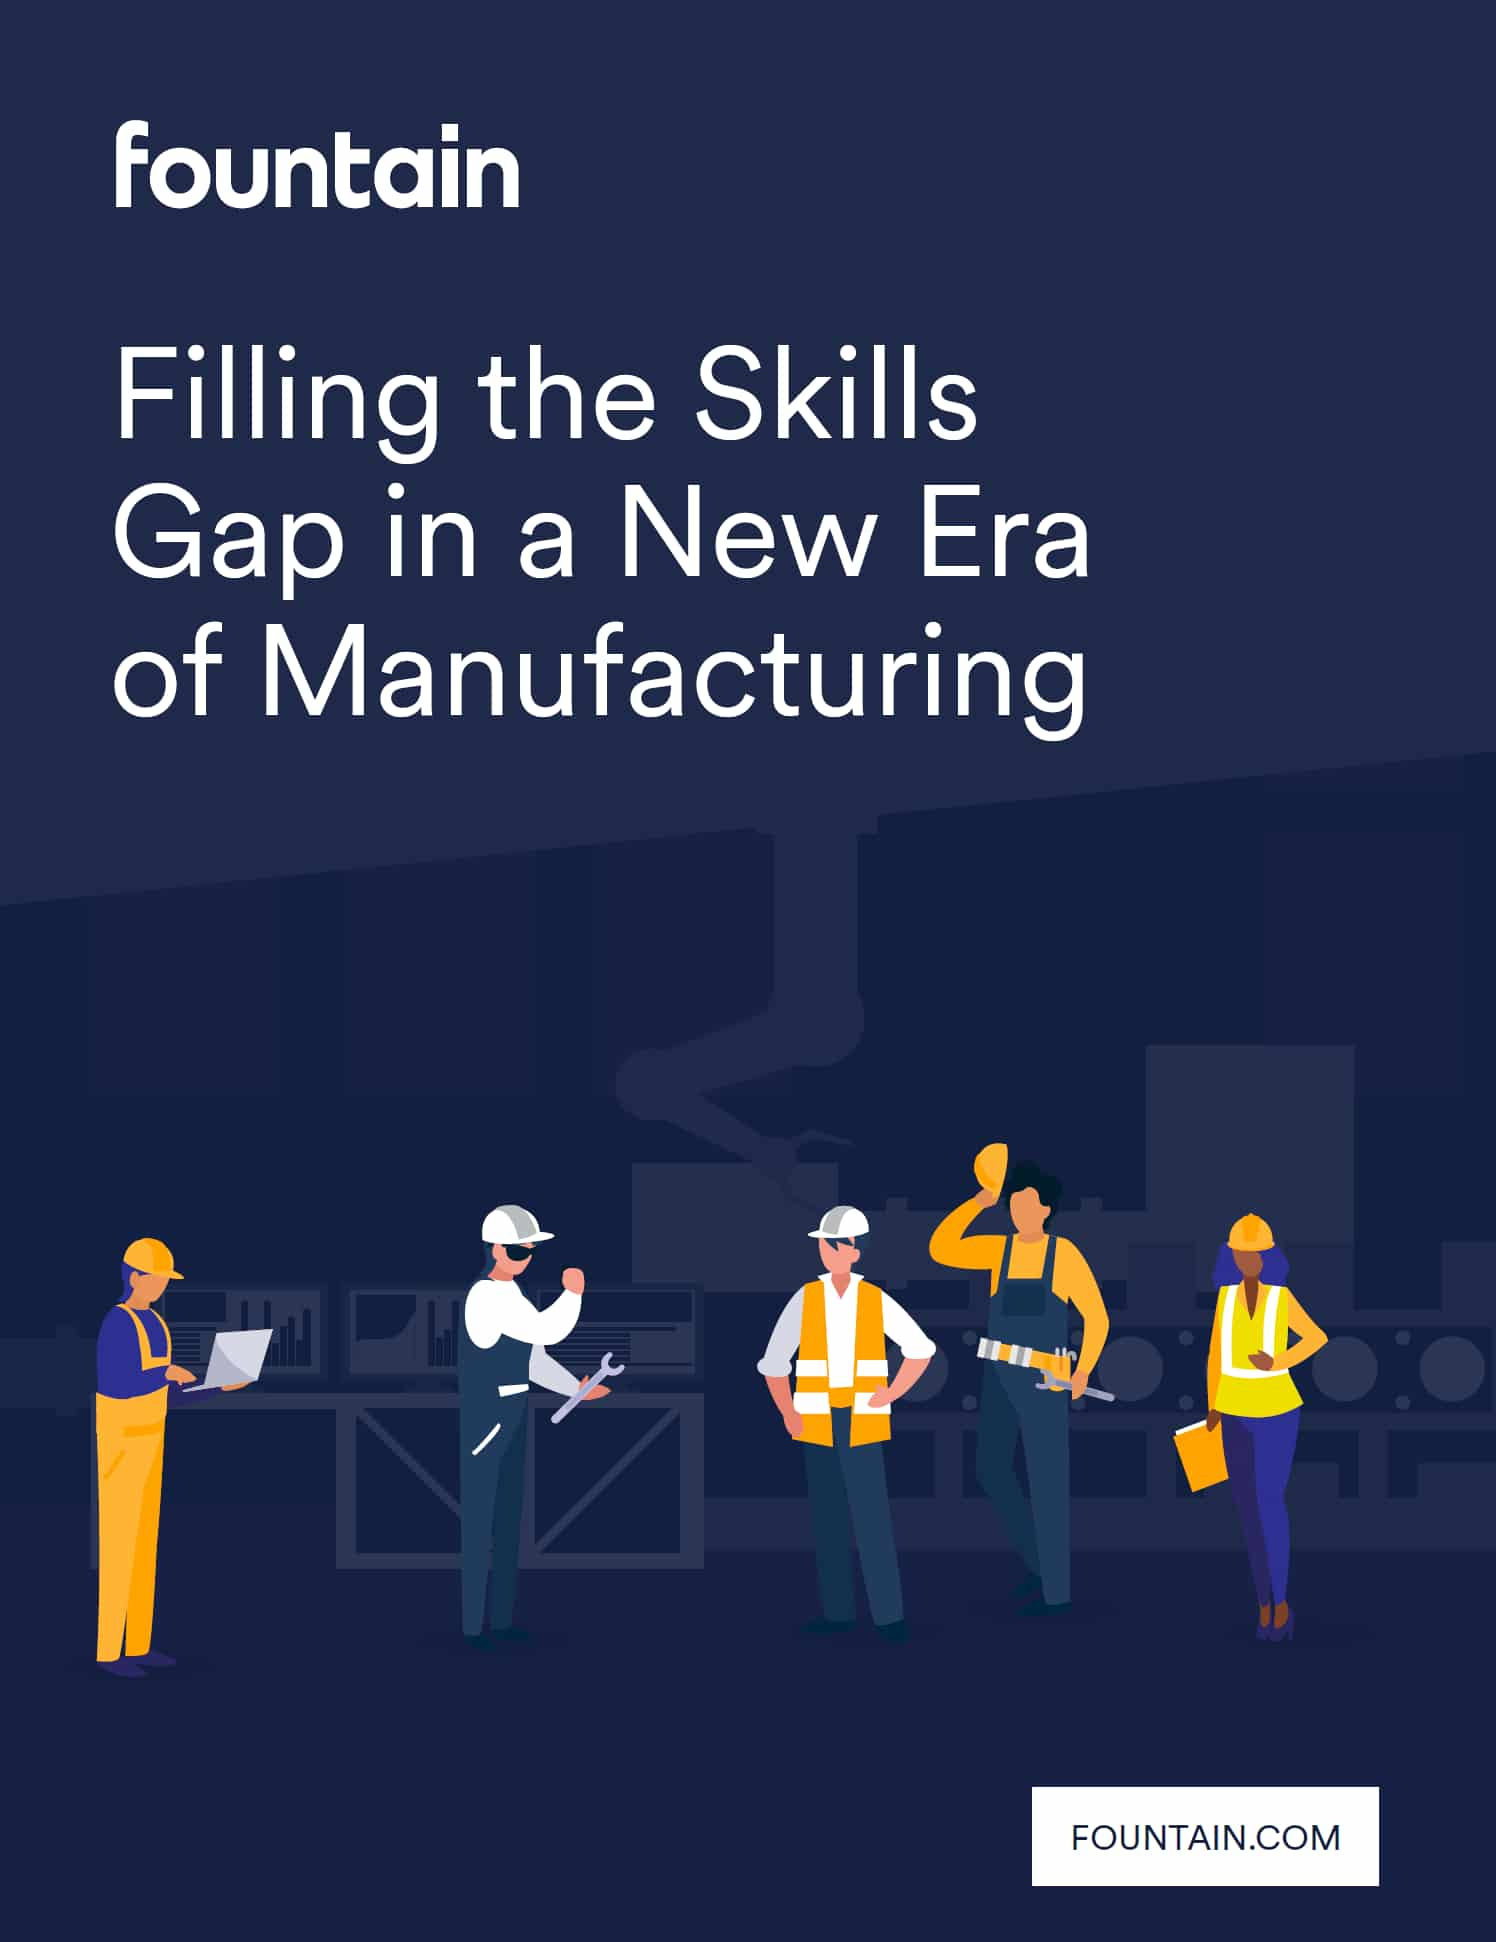 Filling the Skills Gap in a New Era of Manufacturing